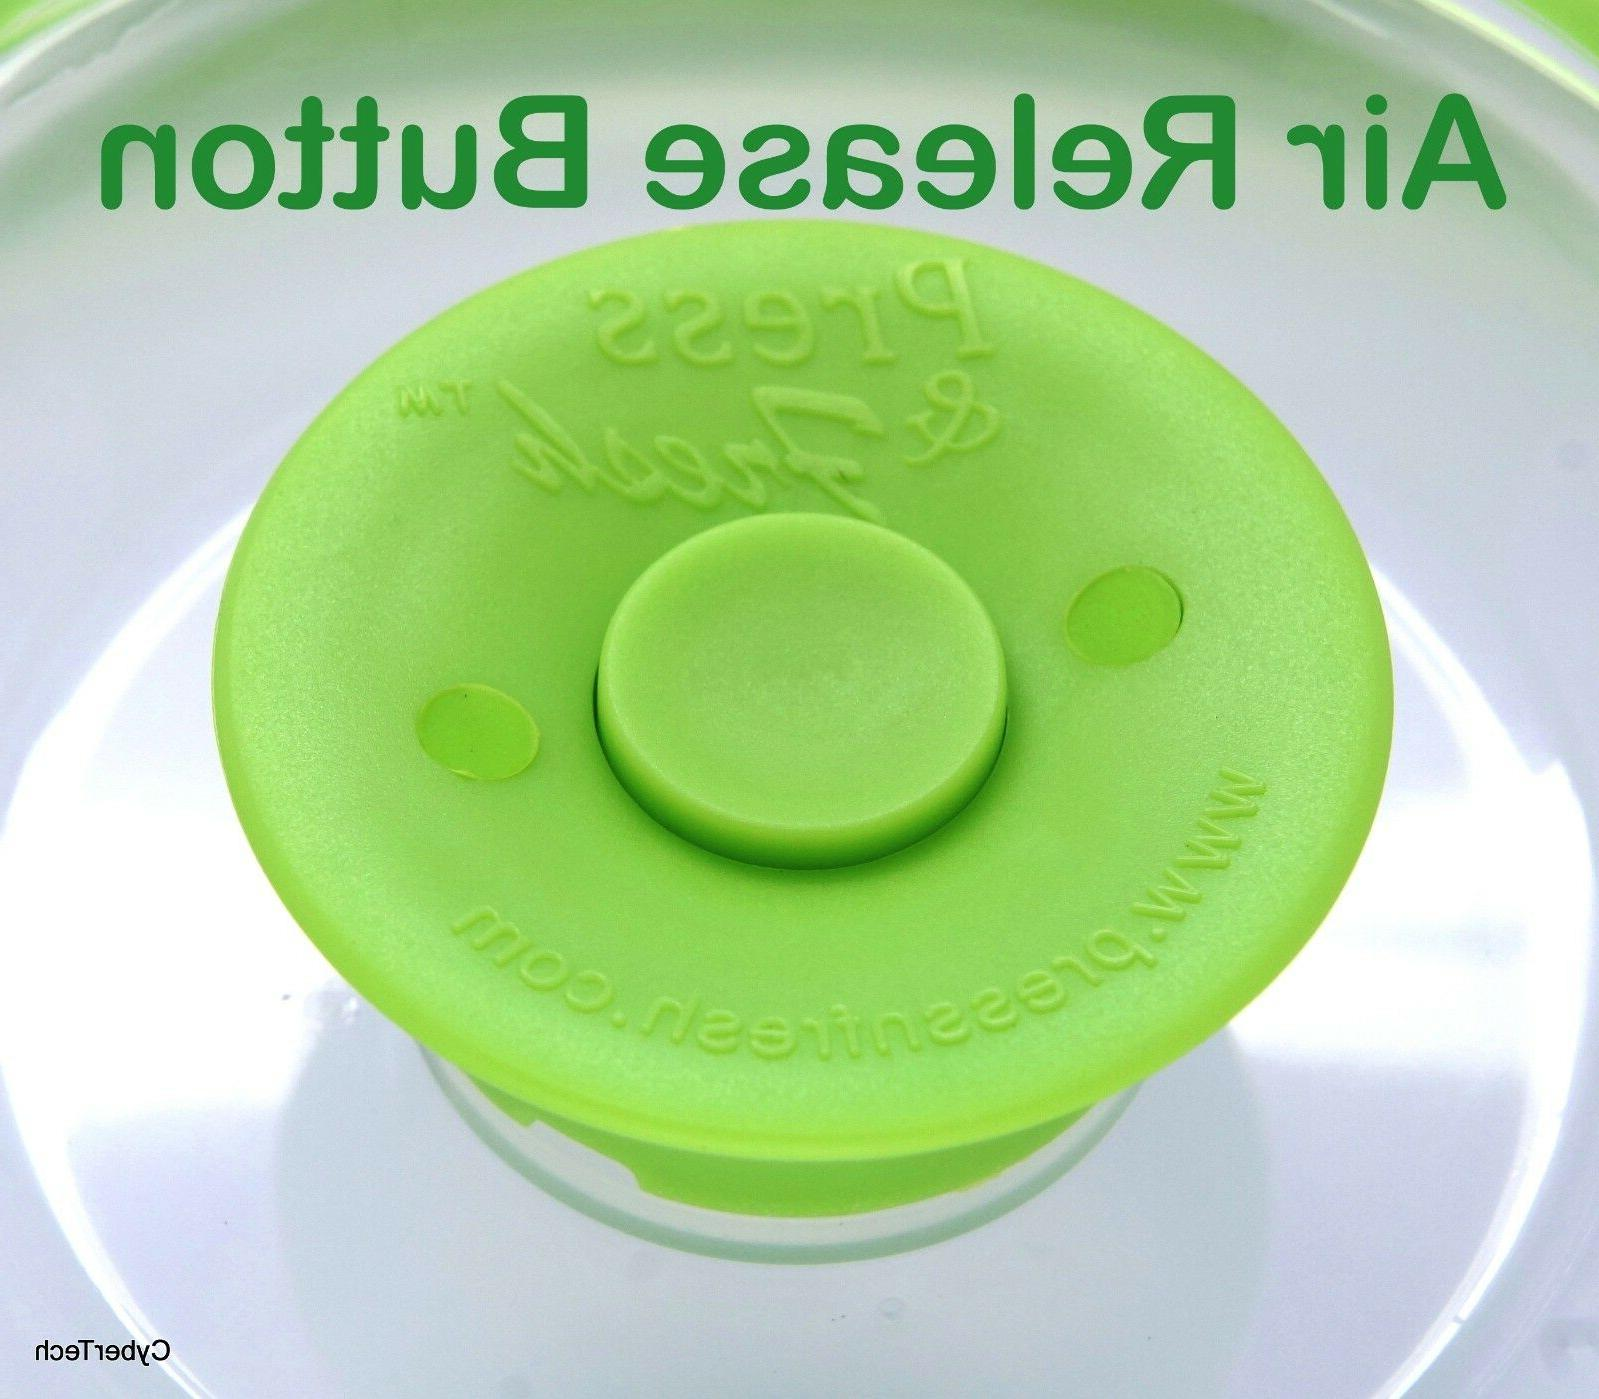 Stackable Food Sealer Container Plate Lid Cover